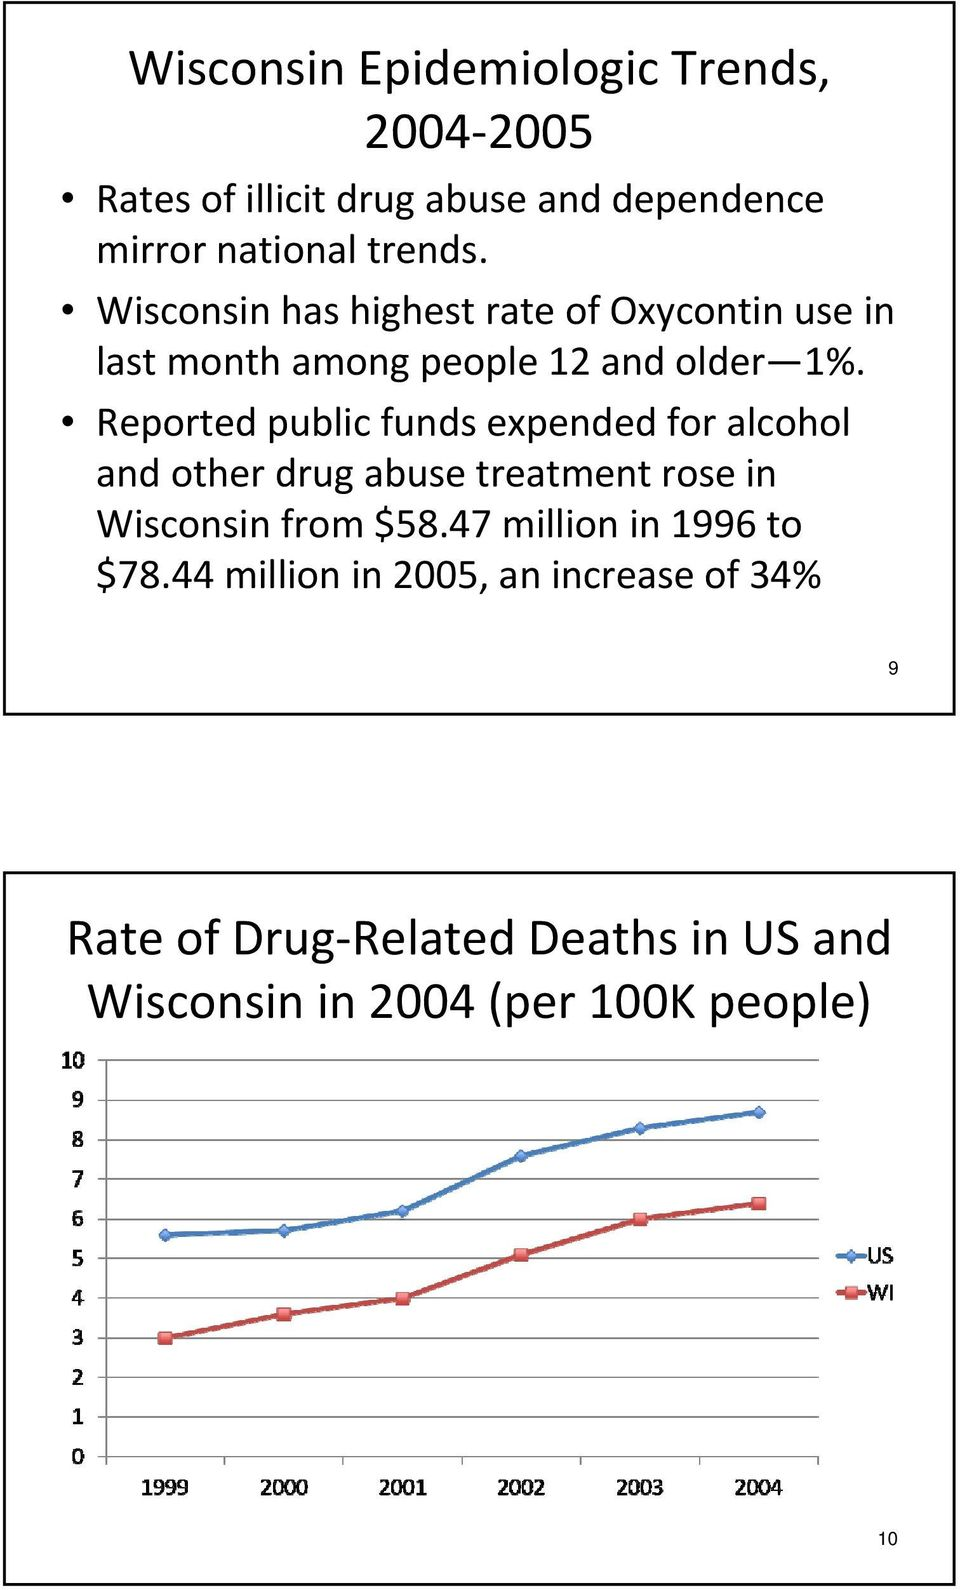 Reported public funds expended for alcohol and other drug abuse treatment rose in Wisconsin from $58.